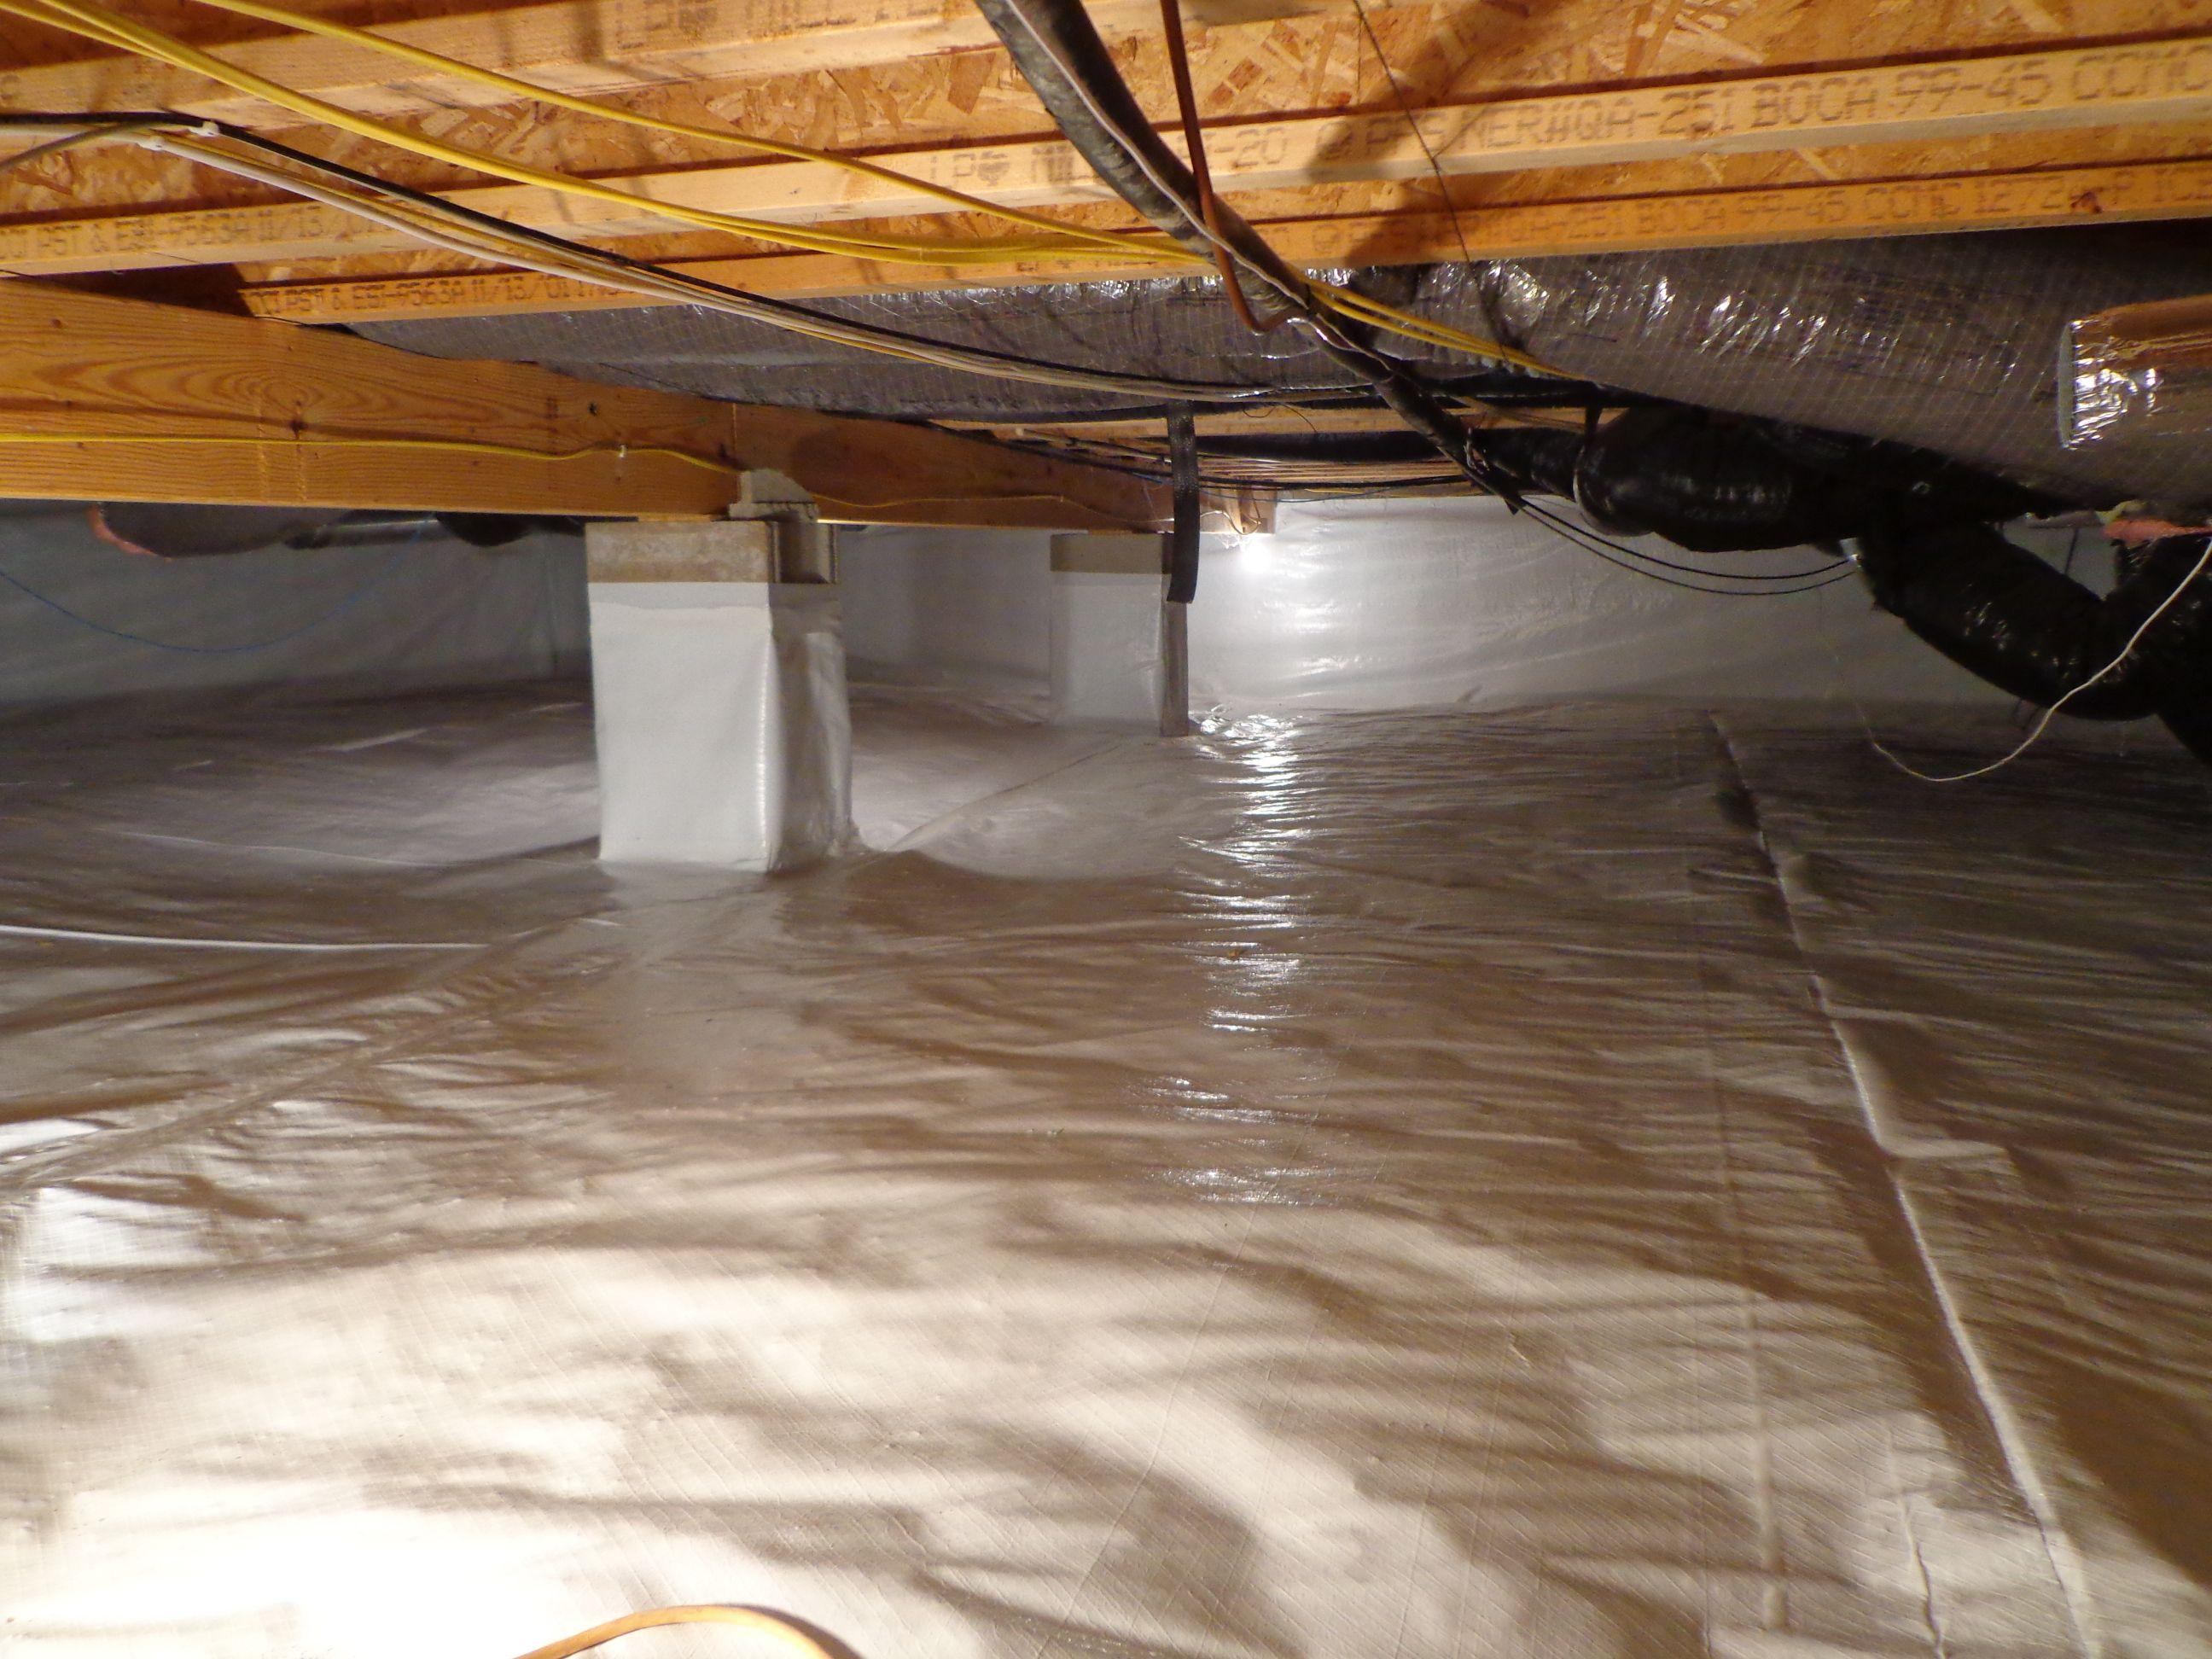 Prevent Cold Floors And Save Money On Heating Bills This Winter By Encapsulating Your Crawle Give Us A Call 317 893 7016 For Free Estimate